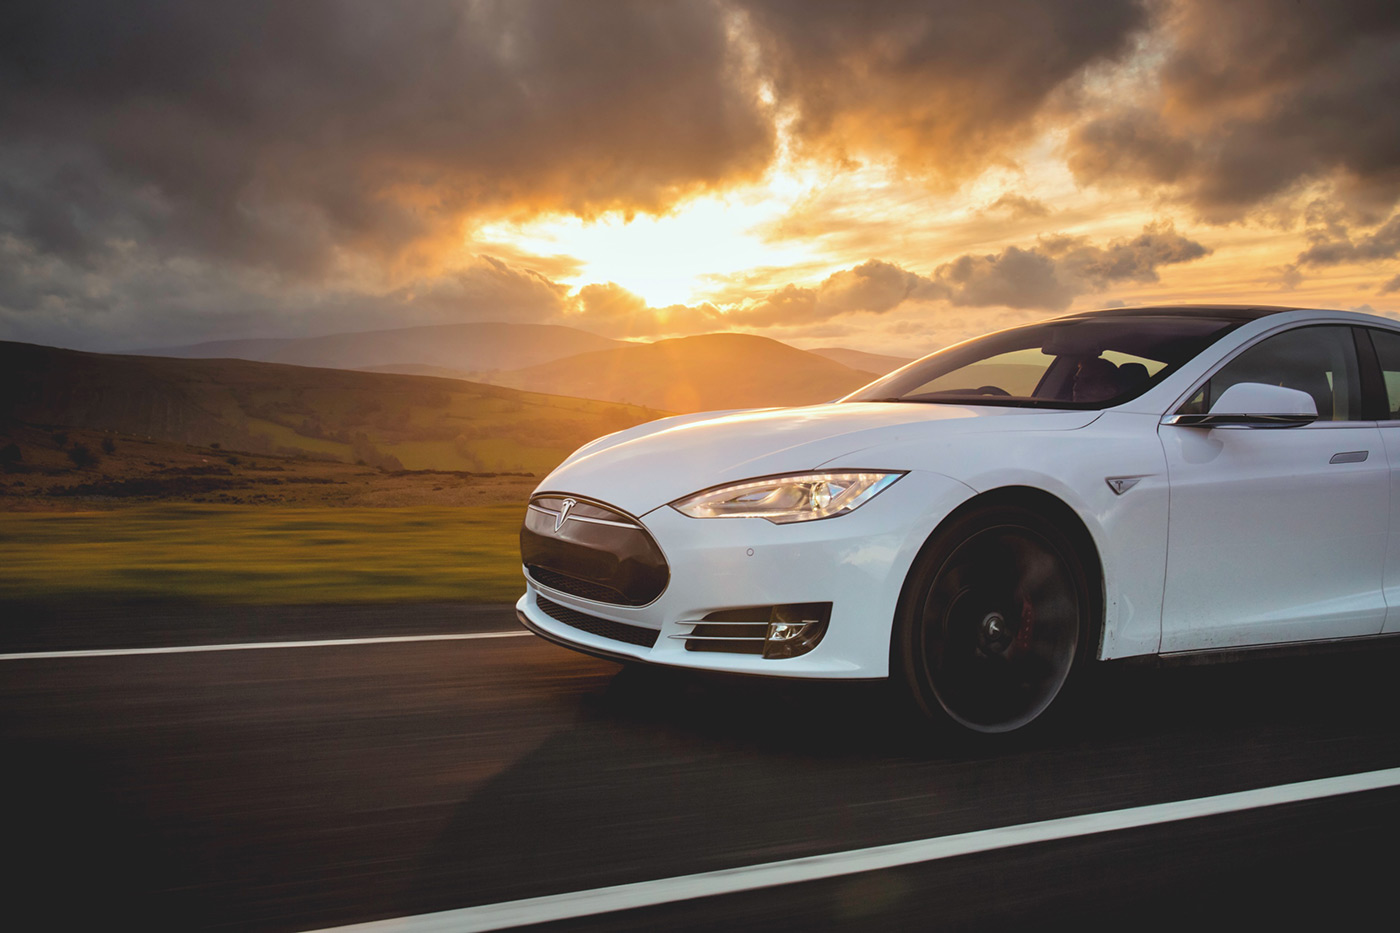 <p>The all-electric Tesla at sunset in Wales.</p>